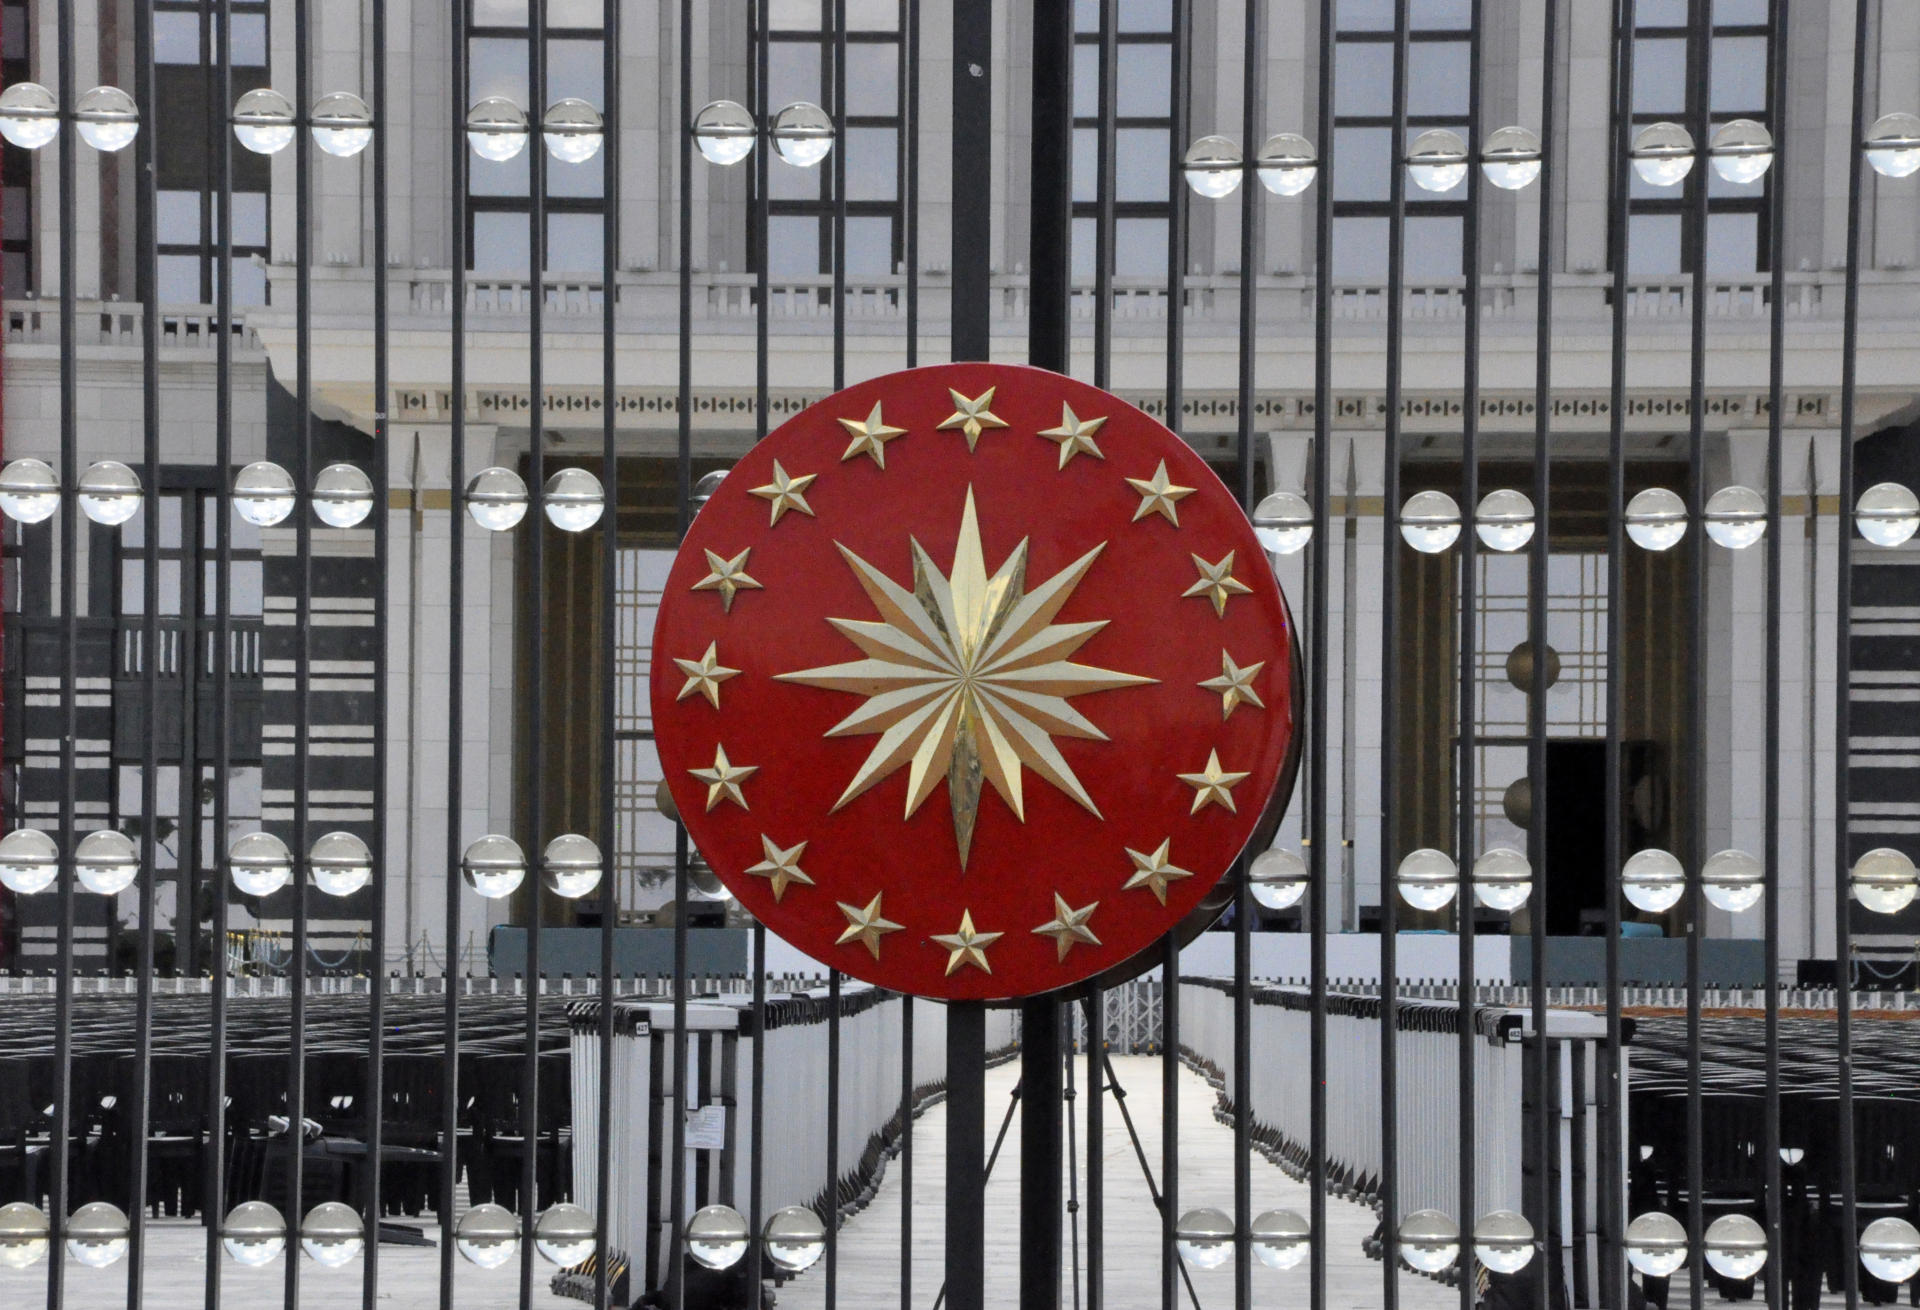 Turkish presidential administration: Armenia once again proves its interest in escalating conflict